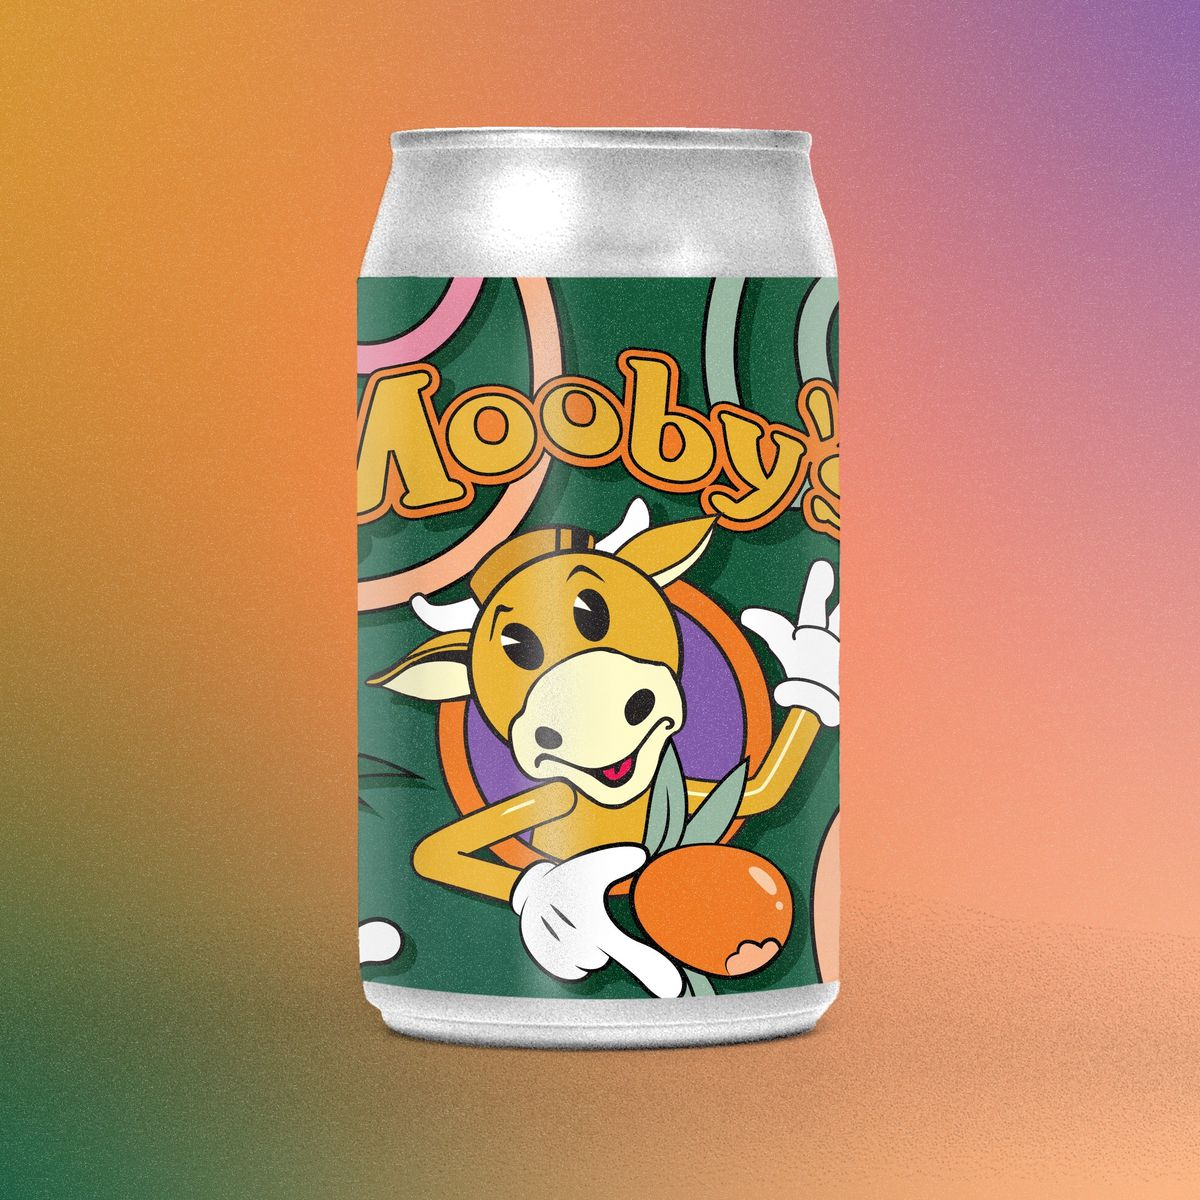 A can of beer with a cartoon cow.